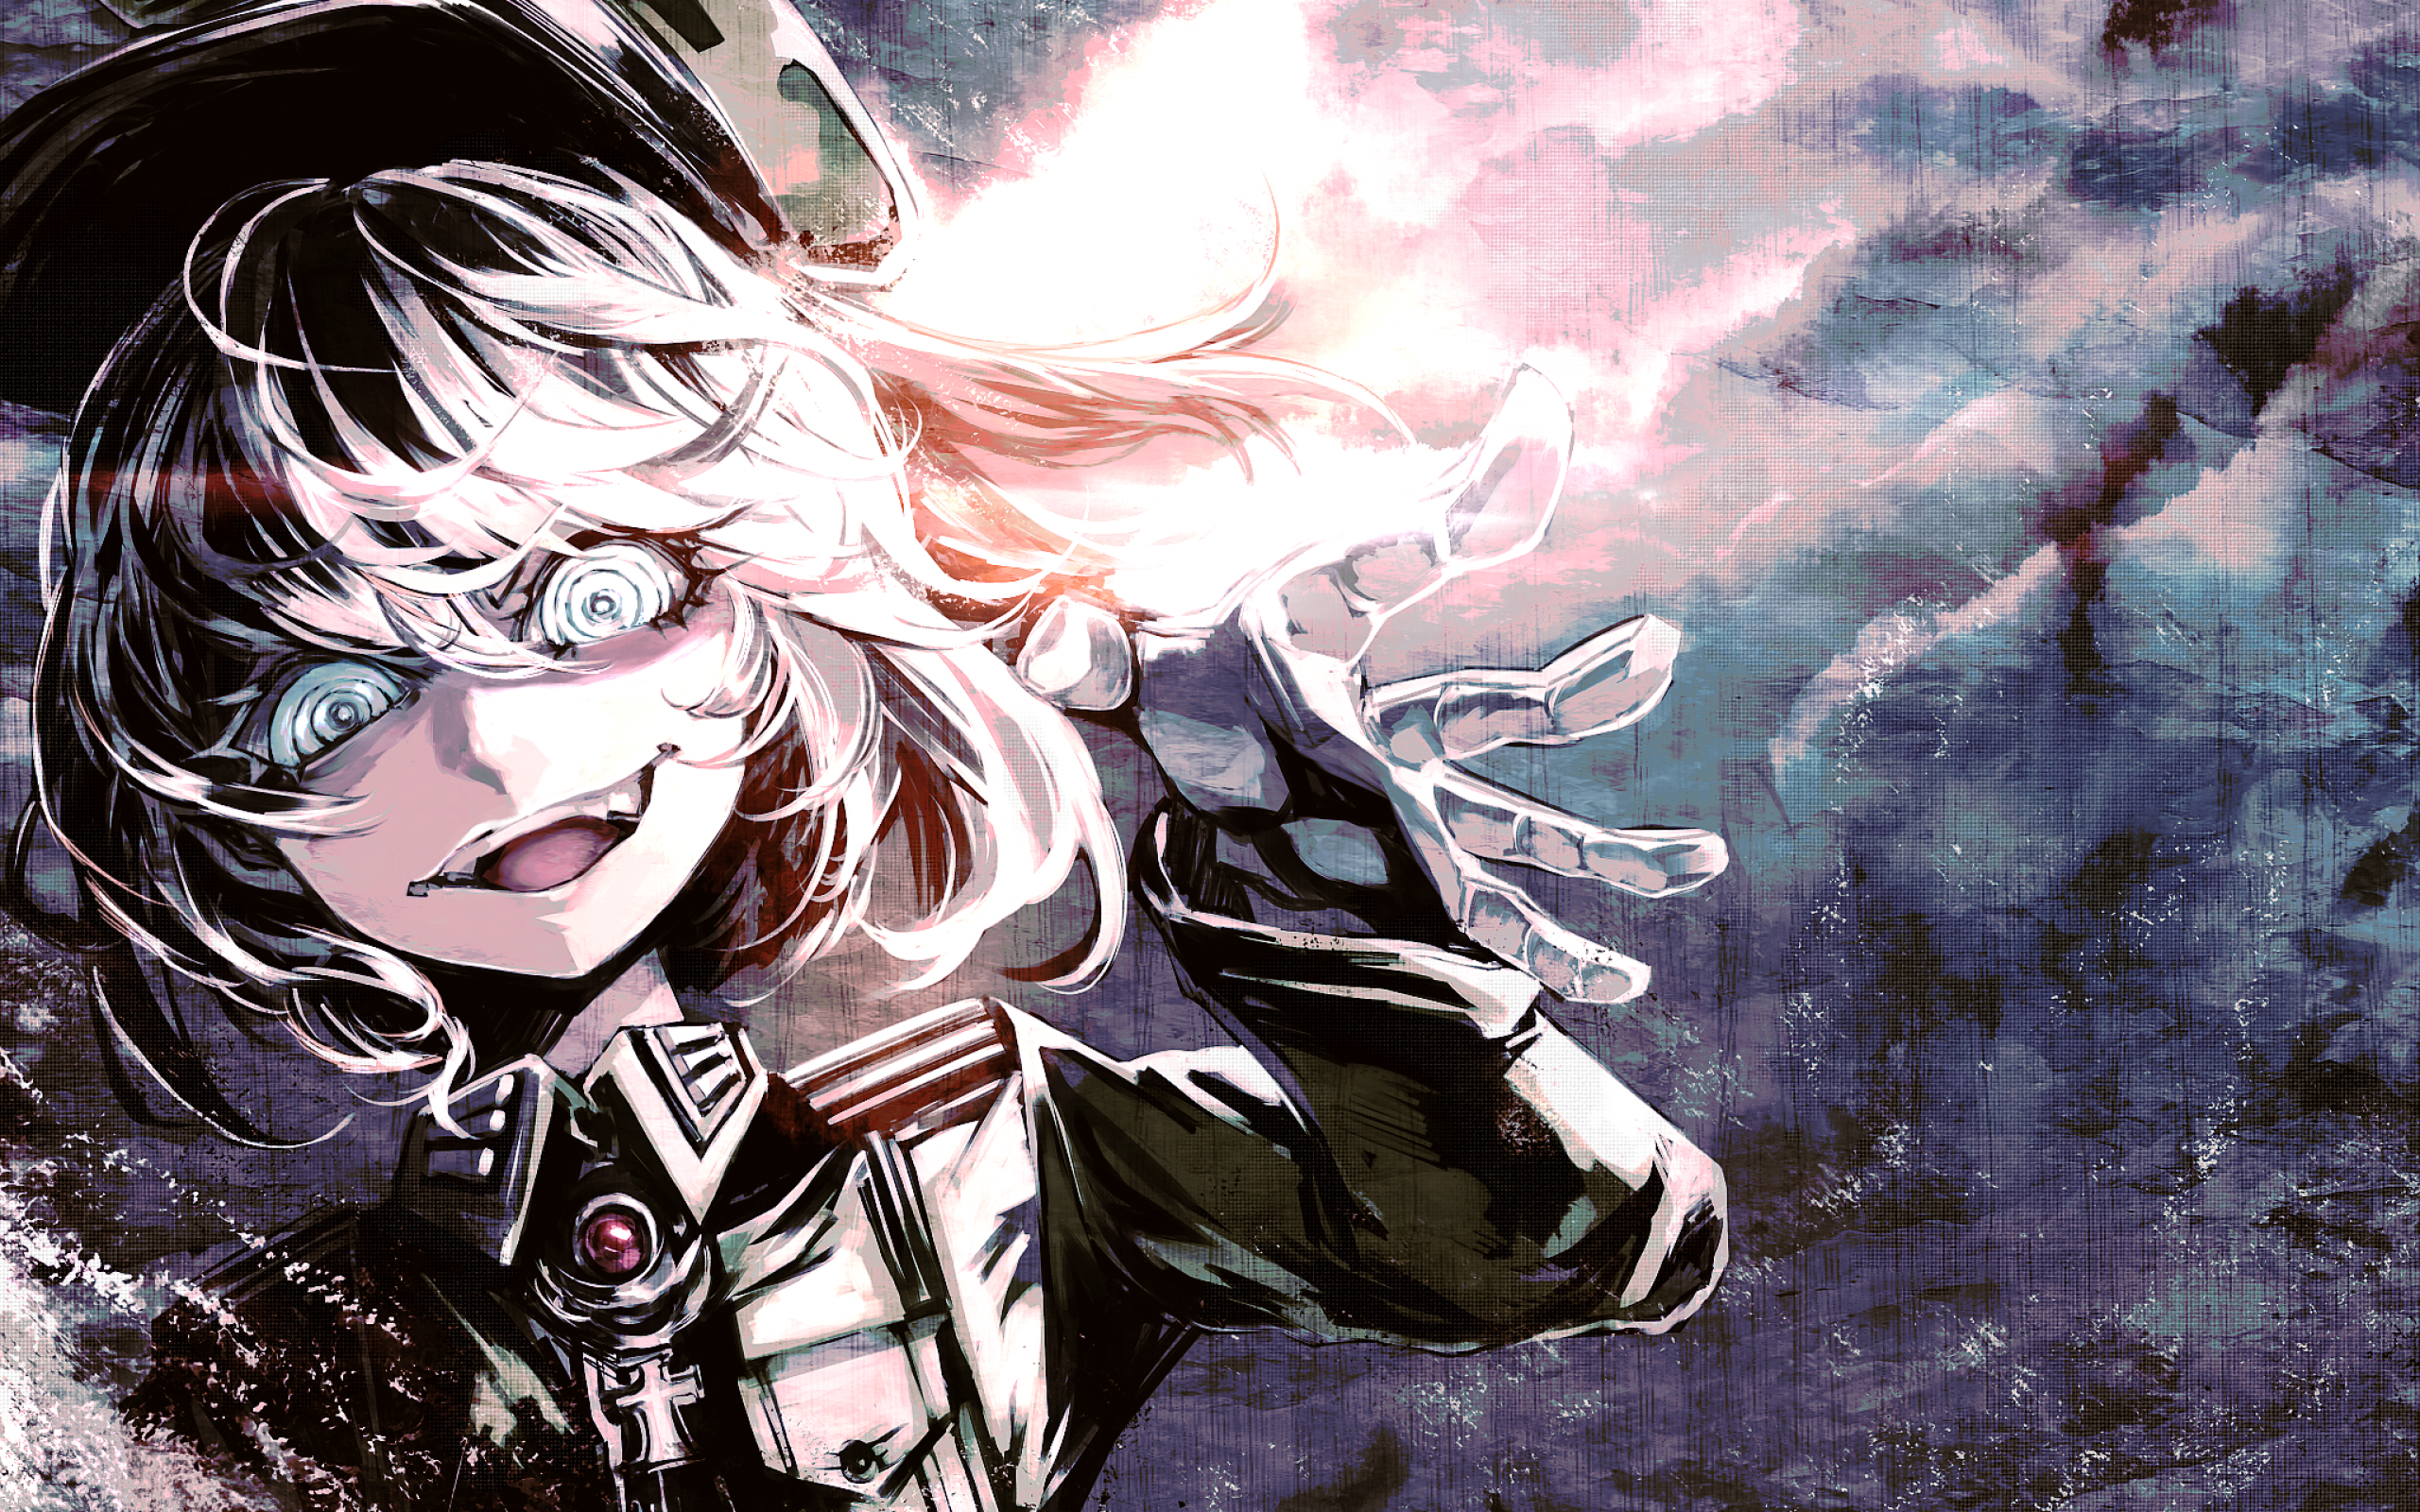 Anime Anime Girls Youjo Senki Tanya Degurechaff Crazy Face Blond Hair Blue Eyes Wallpaper Resolution 2560x1600 Id 351510 Wallha Com Some characters just need a way to show off how undeniably evil they are. anime anime girls youjo senki tanya